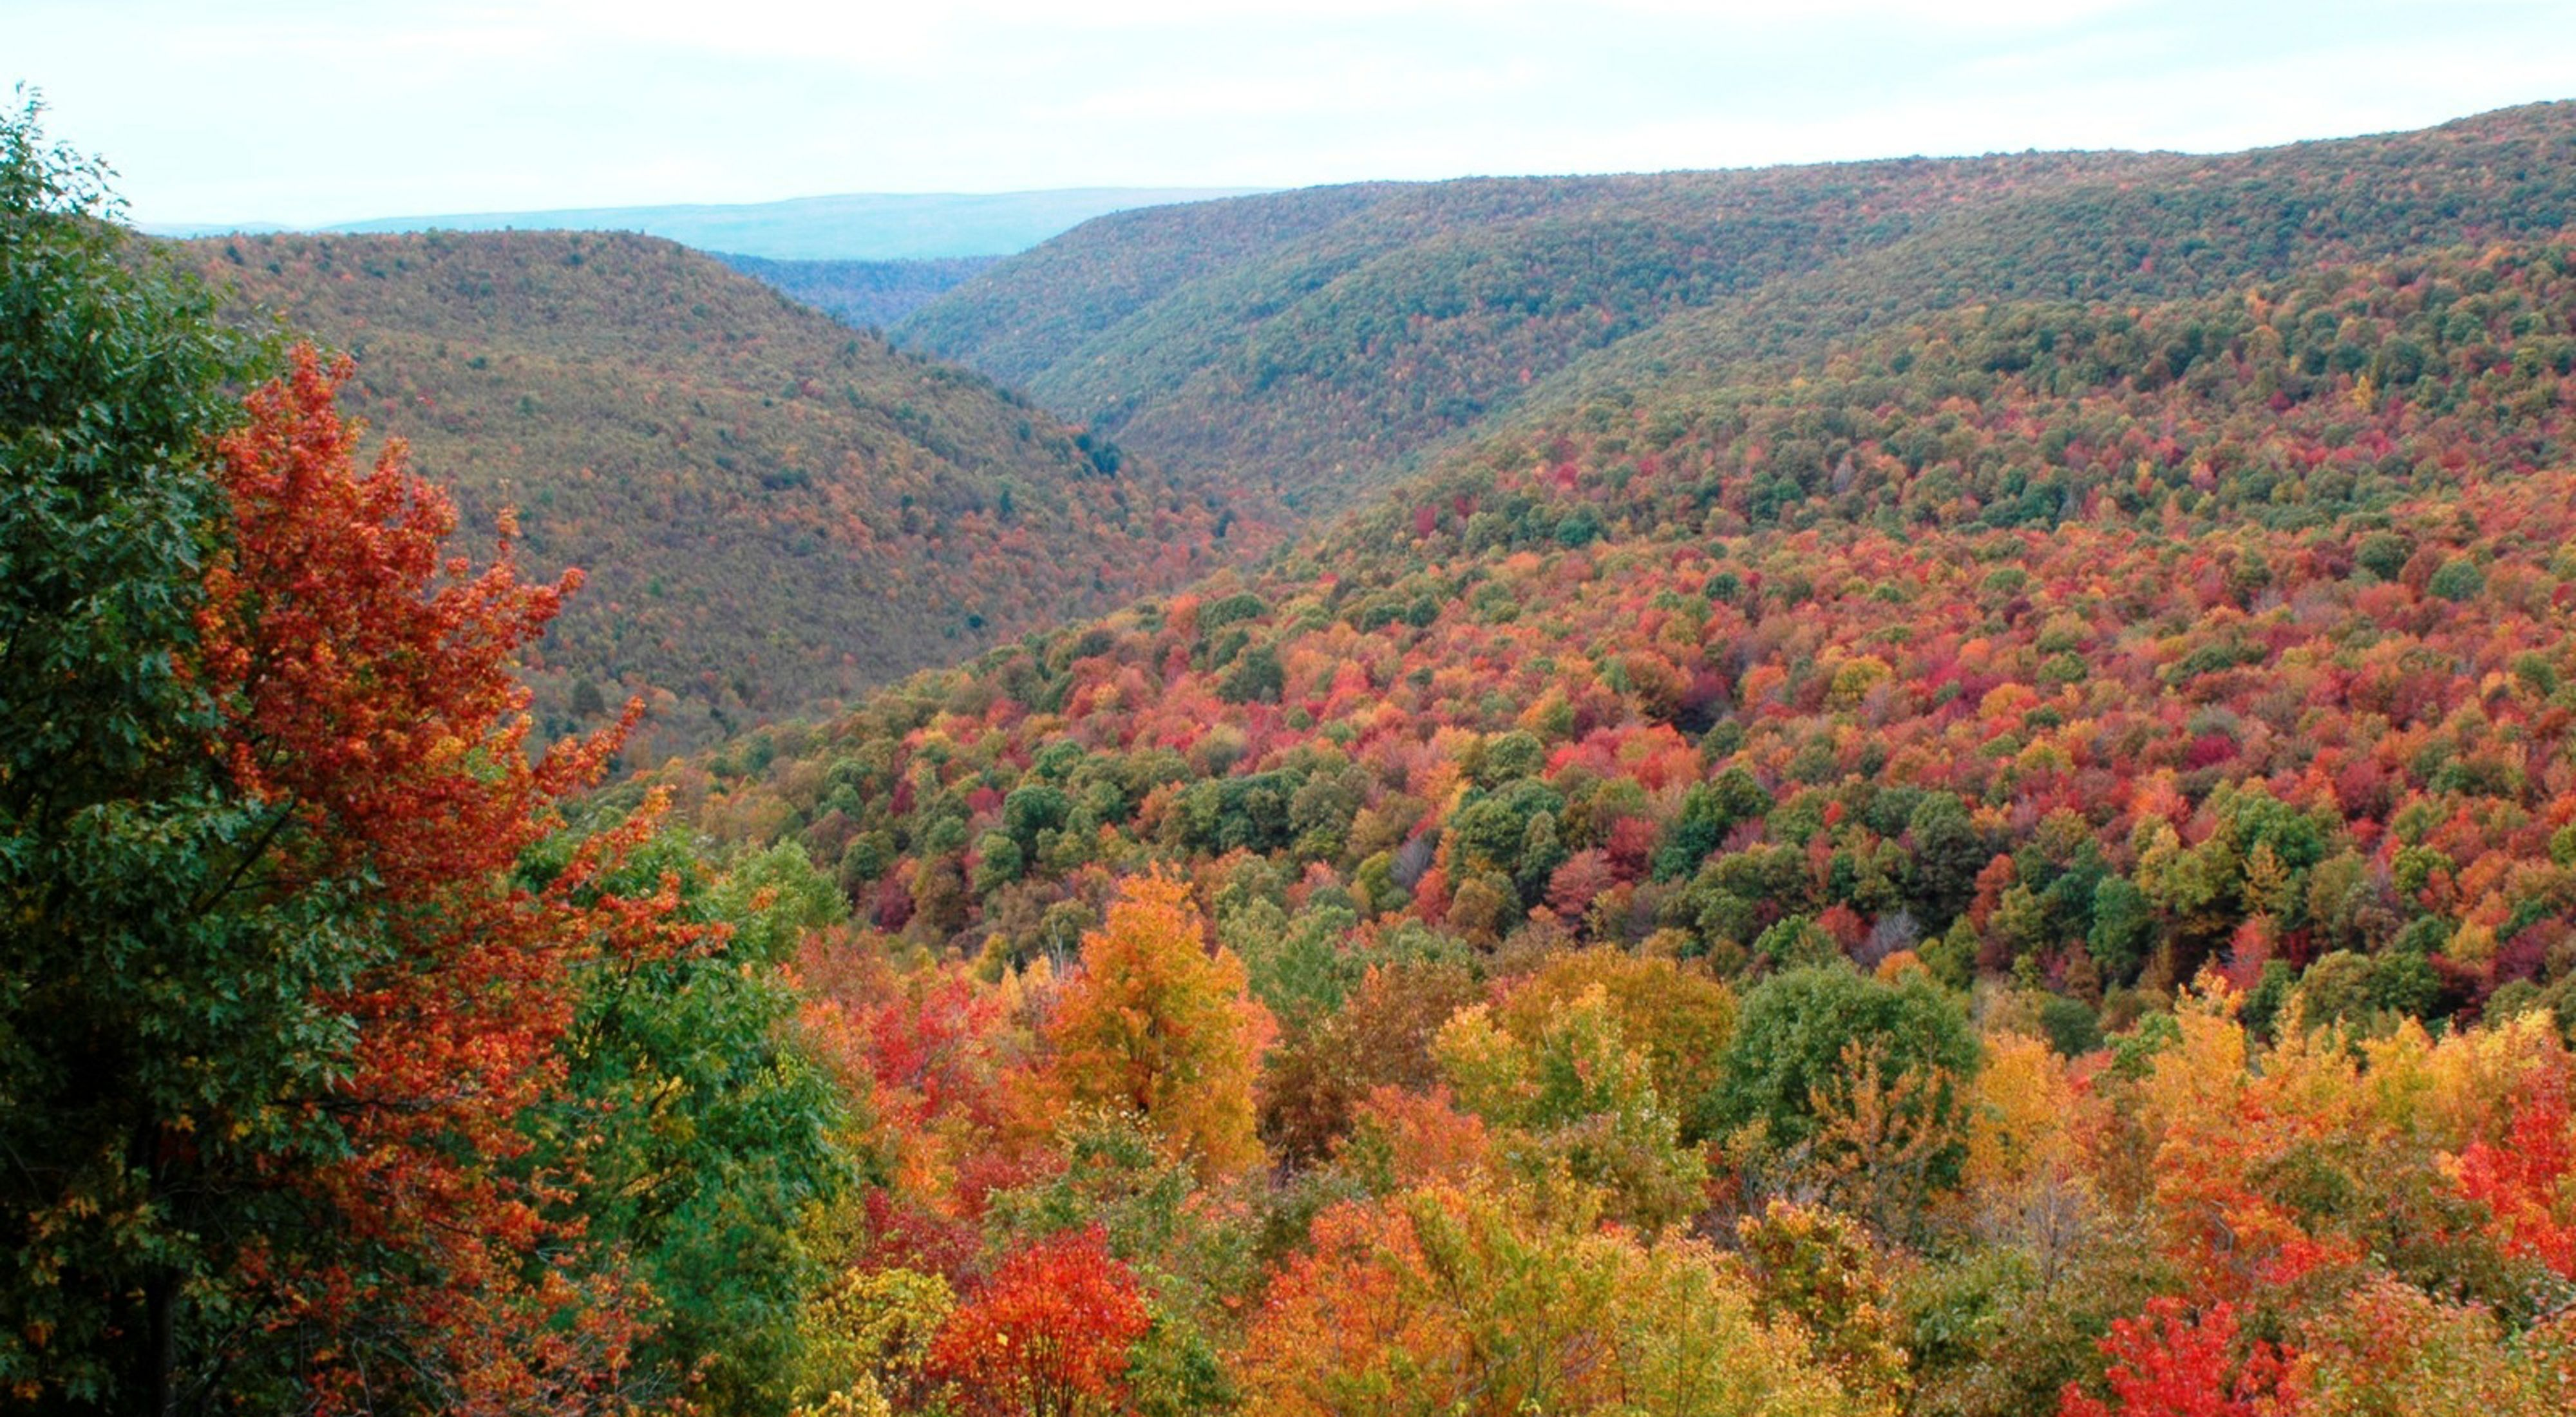 Trees with autumn leaves cover a mountain ridge.